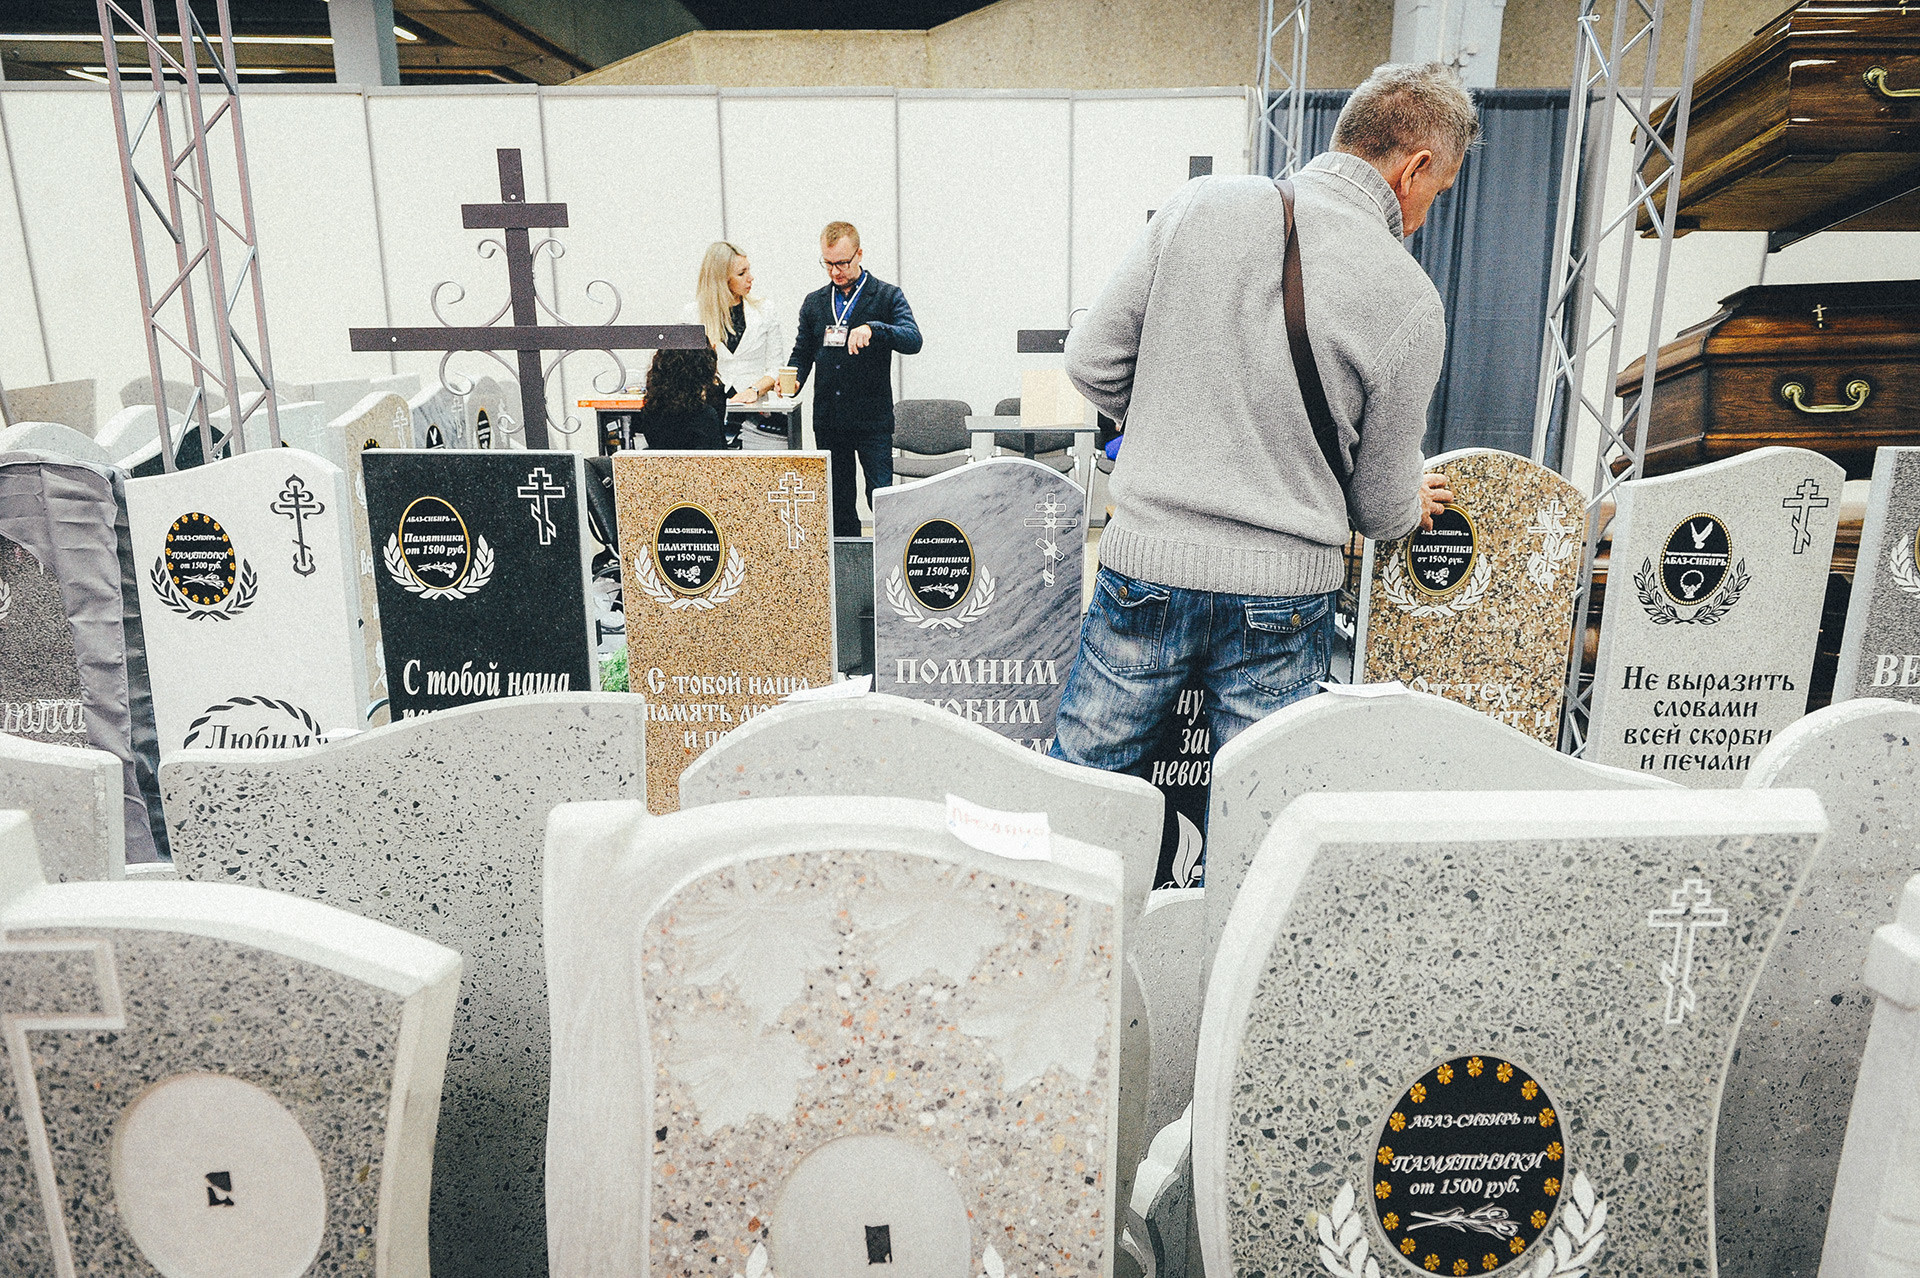 Tombstones on display at a funeral home shop